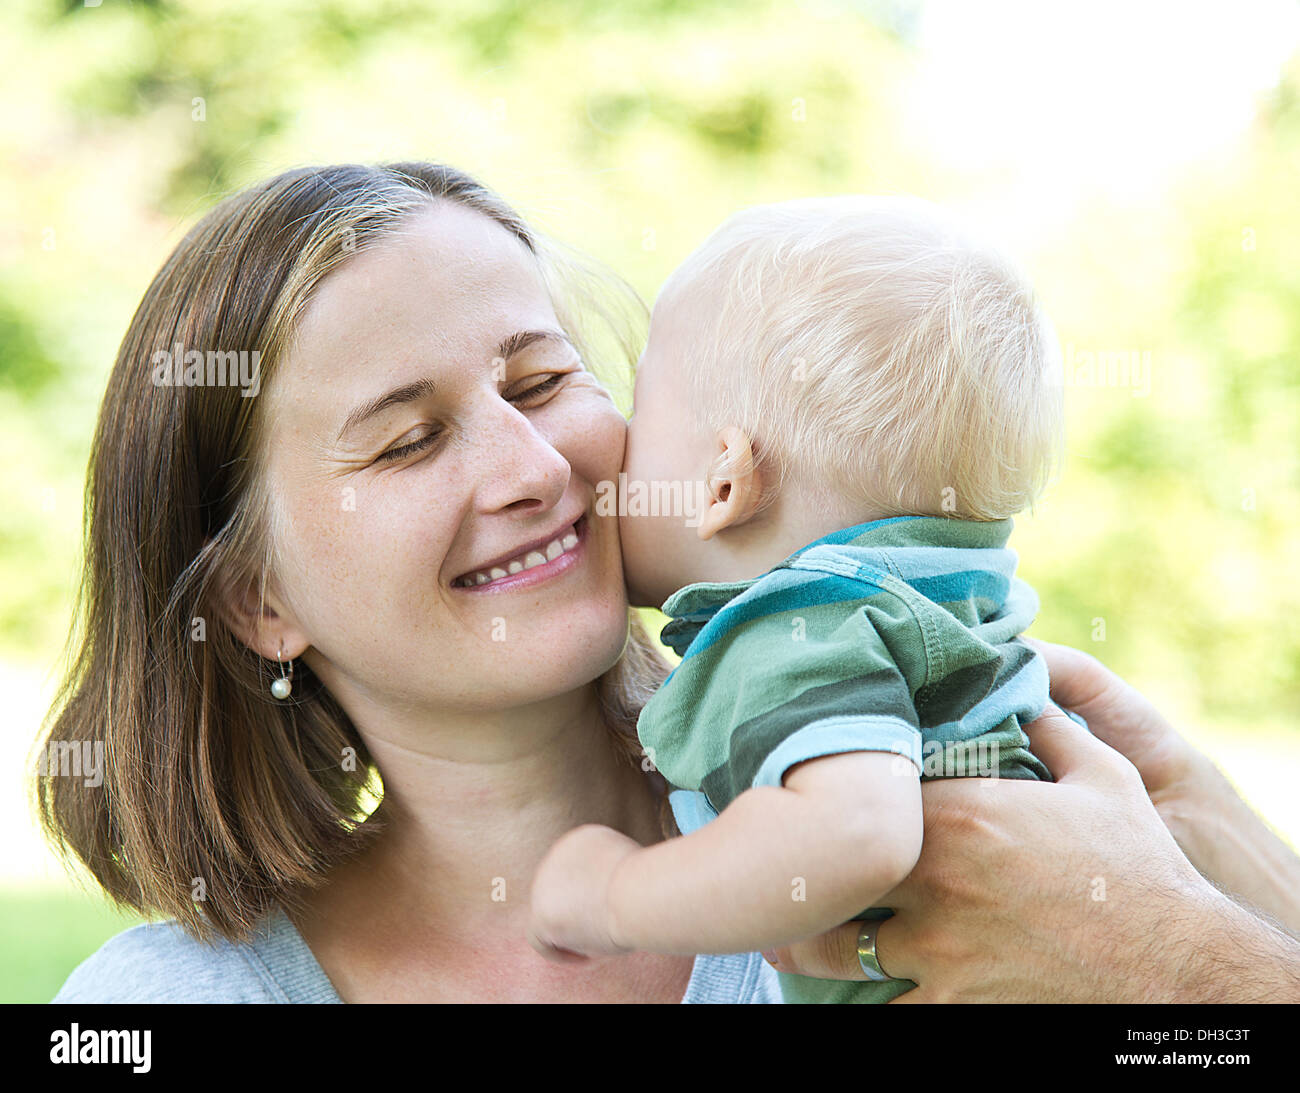 mother with baby - Stock Image